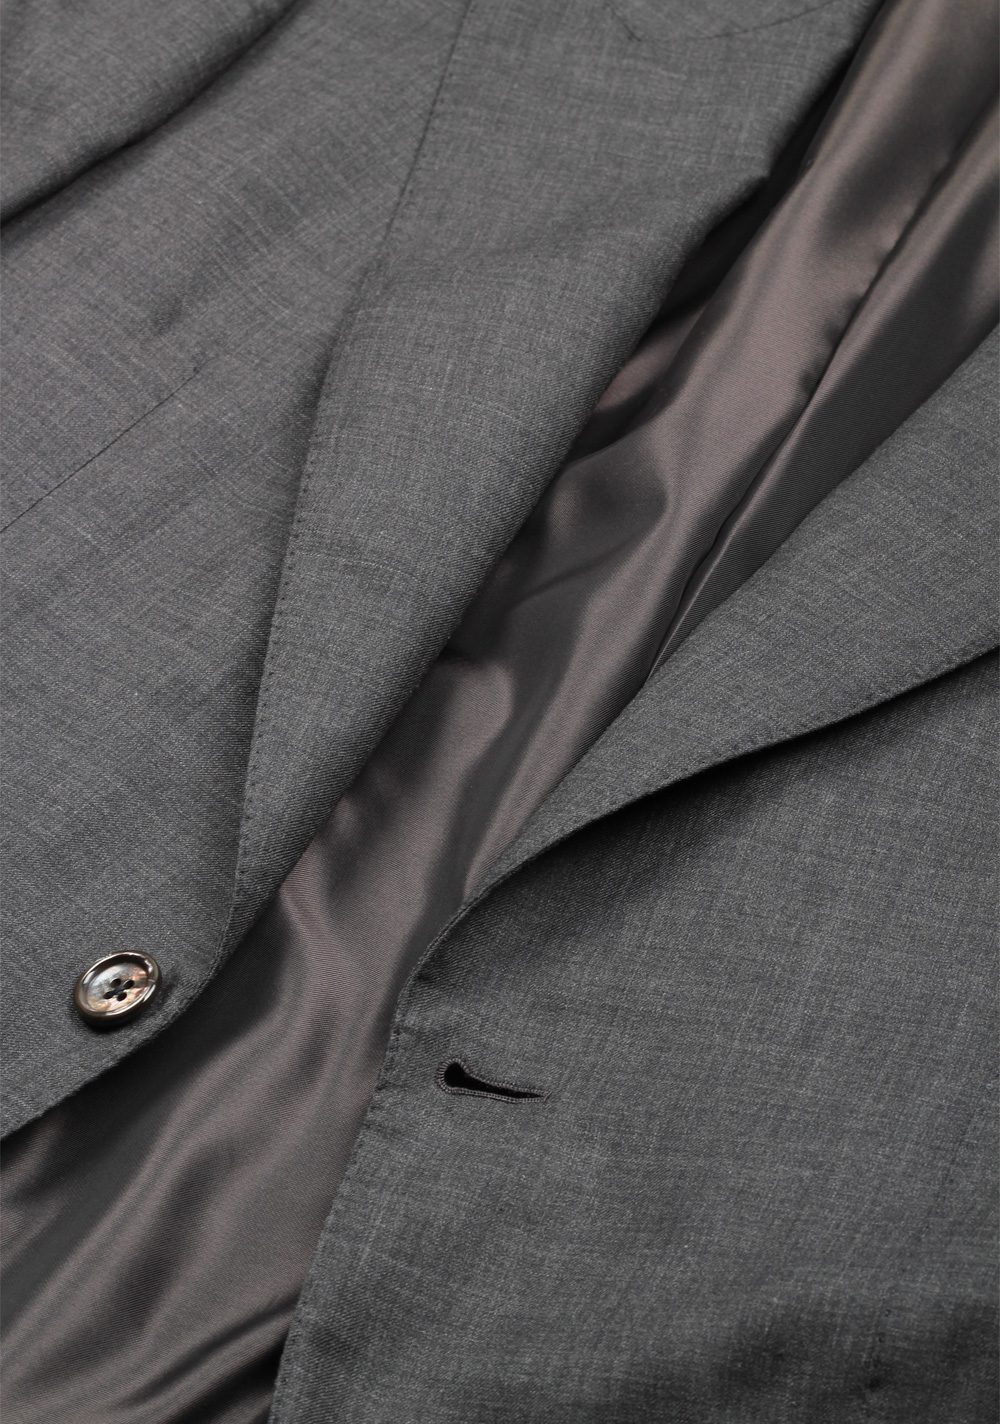 TOM FORD Shelton Gray Sport Coat Size 46 / 36R In Cashmere | Costume Limité